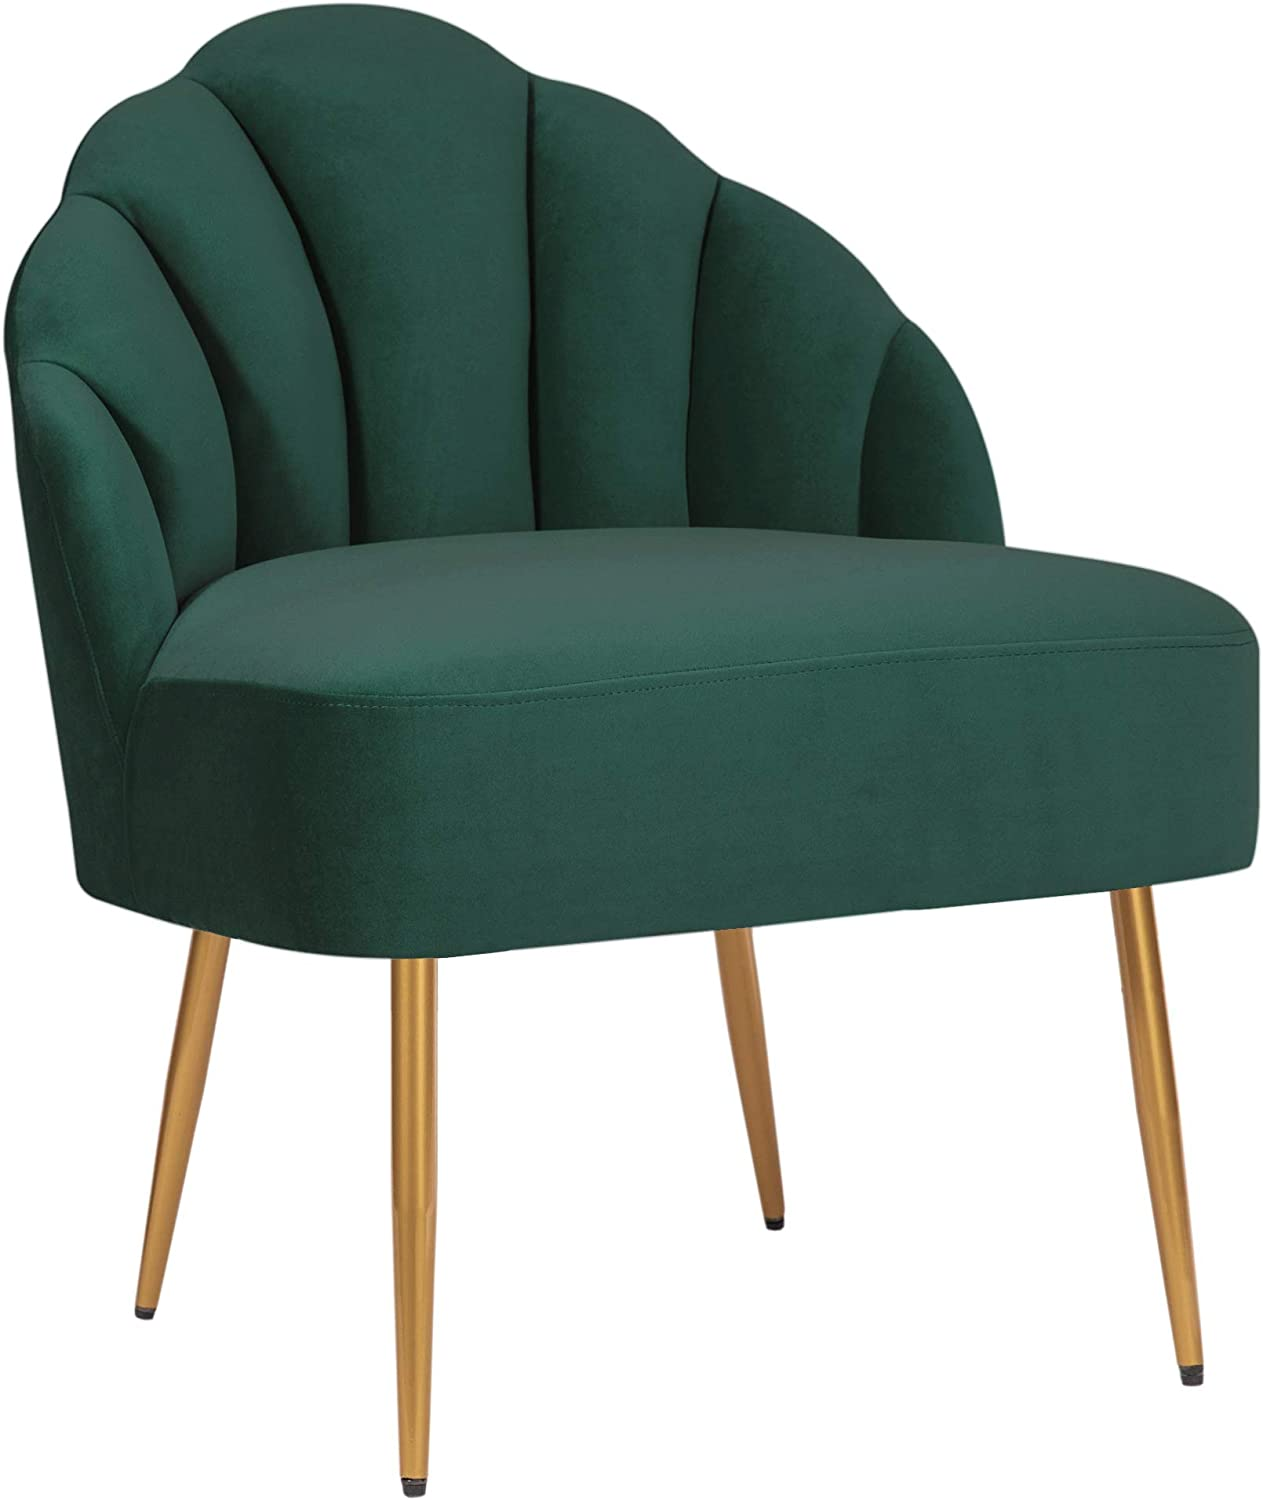 "Amazon Brand – Rivet Sheena Glam Tufted Velvet Shell Chair, 23.5""W, Emerald"